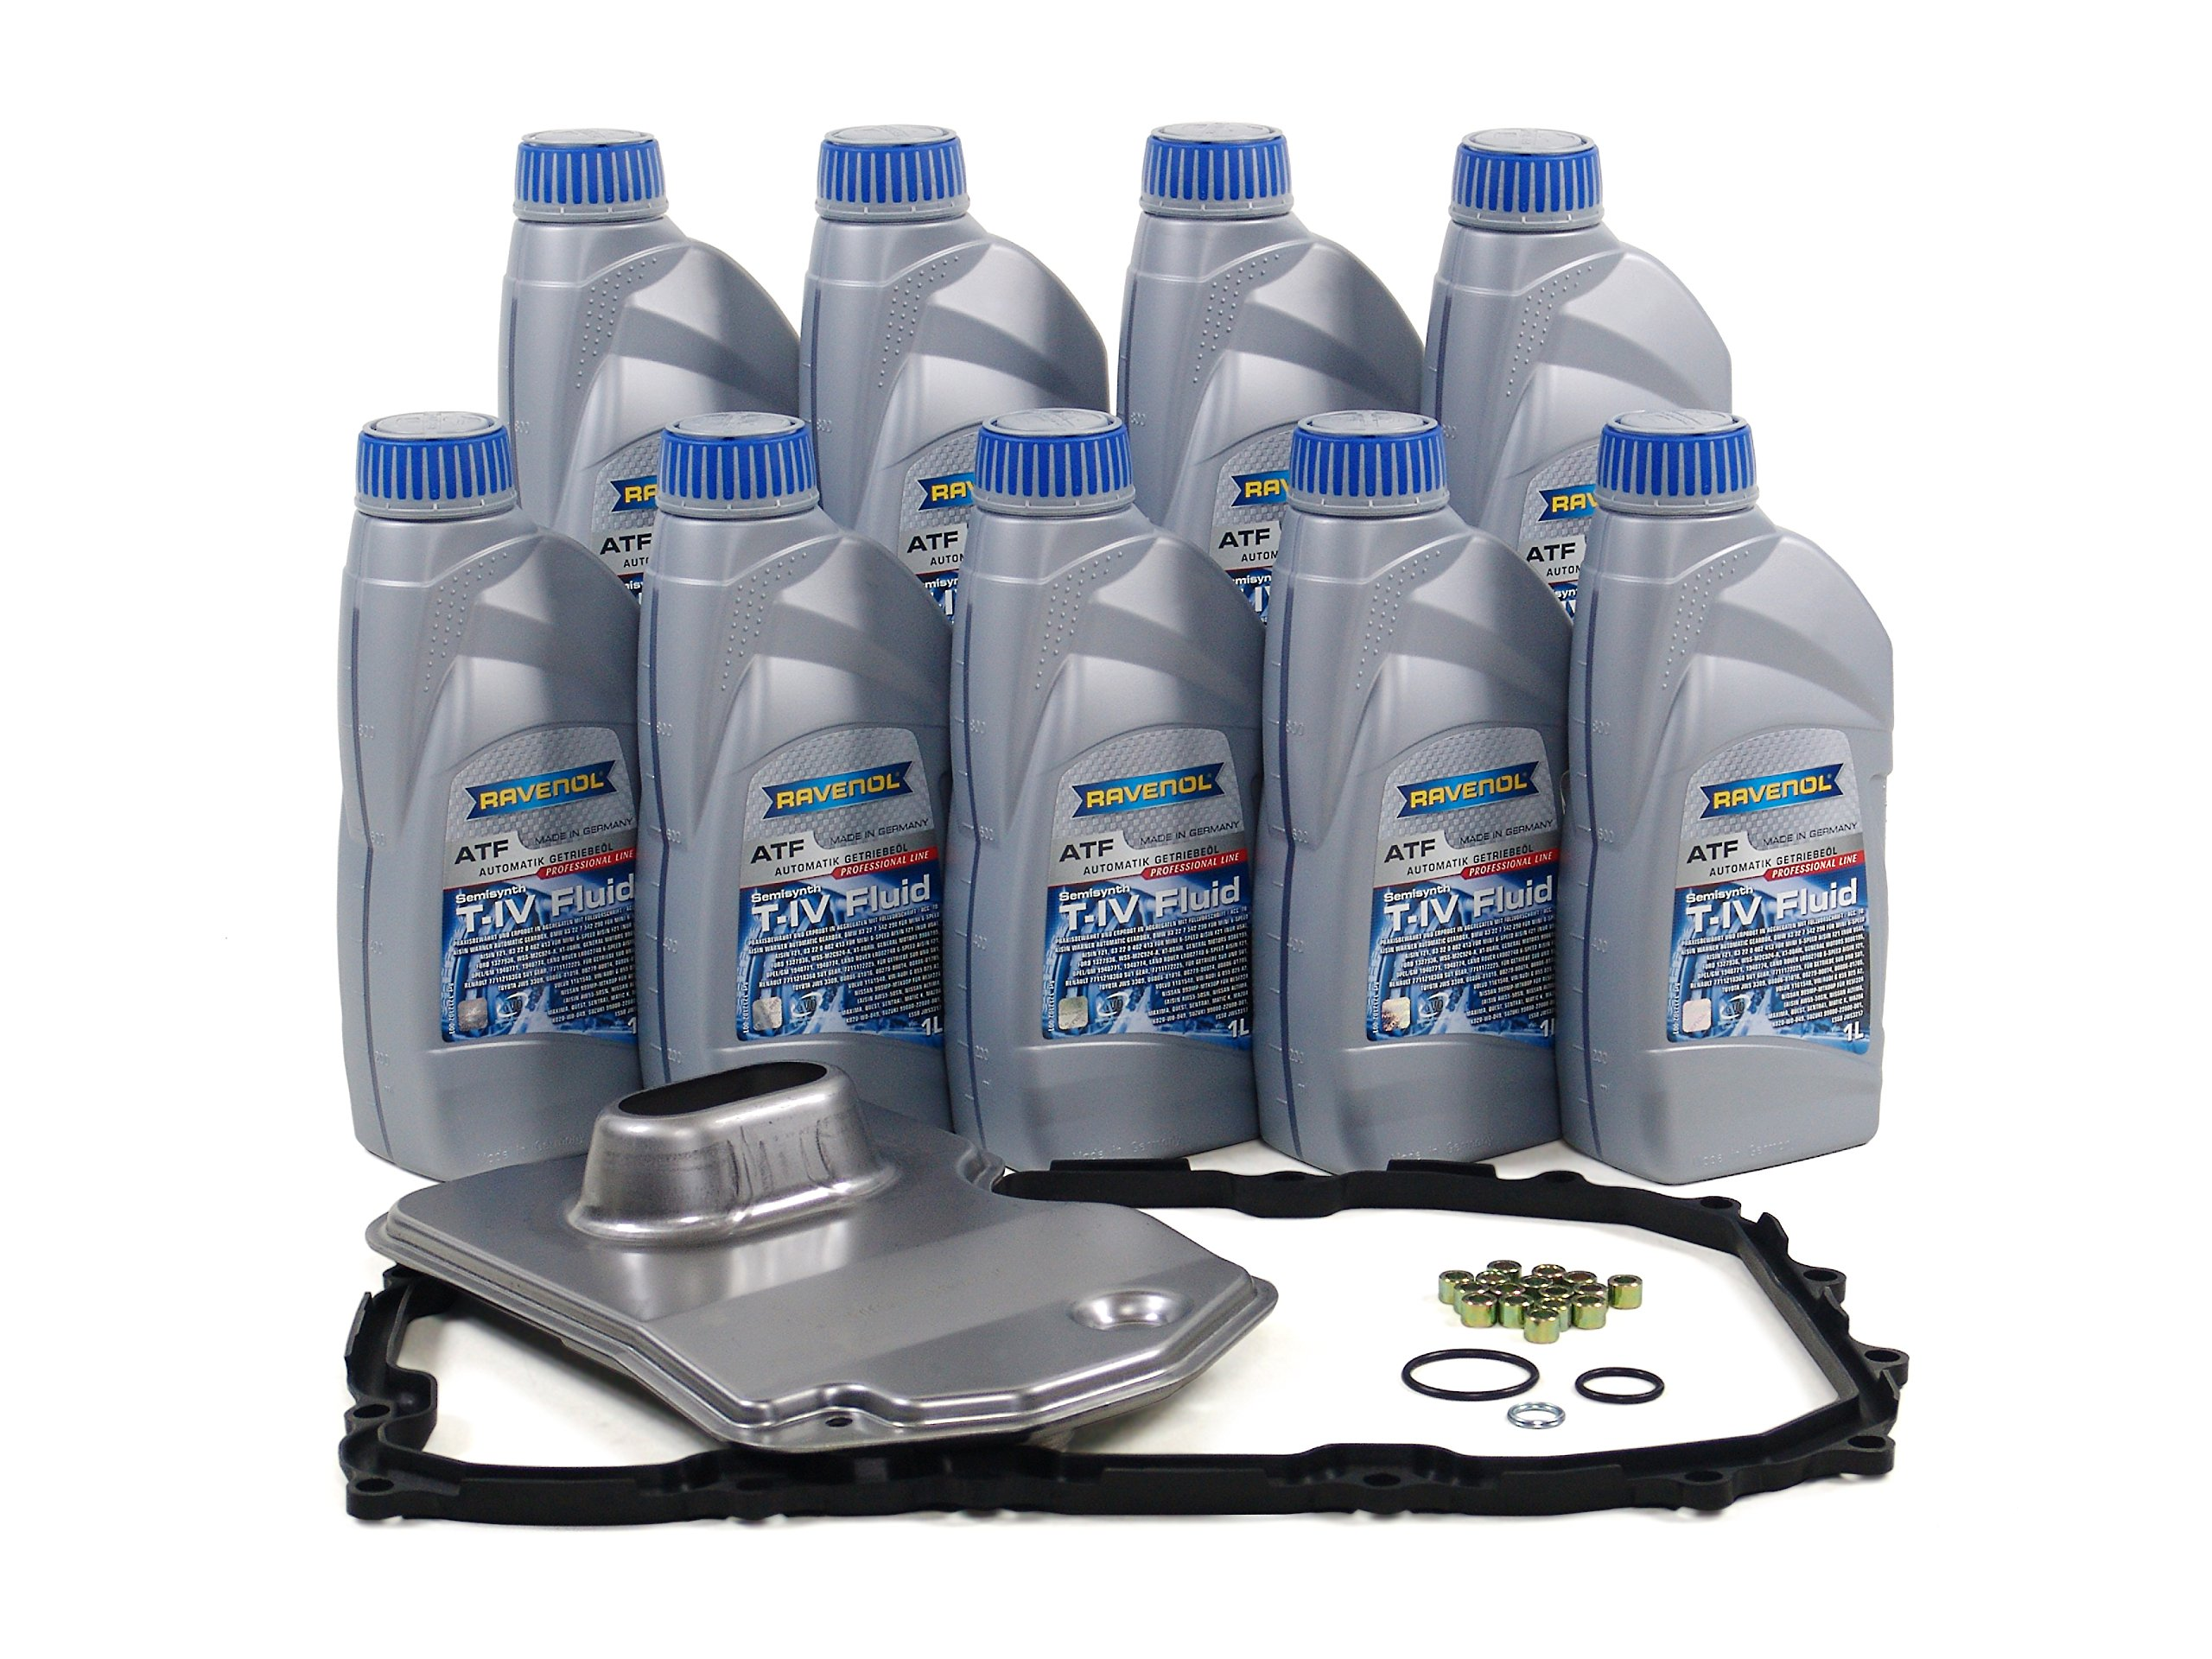 BLAU F2A1020-C Porsche Cayenne ATF Automatic Transmission Fluid Filter Kit - 2003-10 w/ 6 Speed Tiptronic by Blau